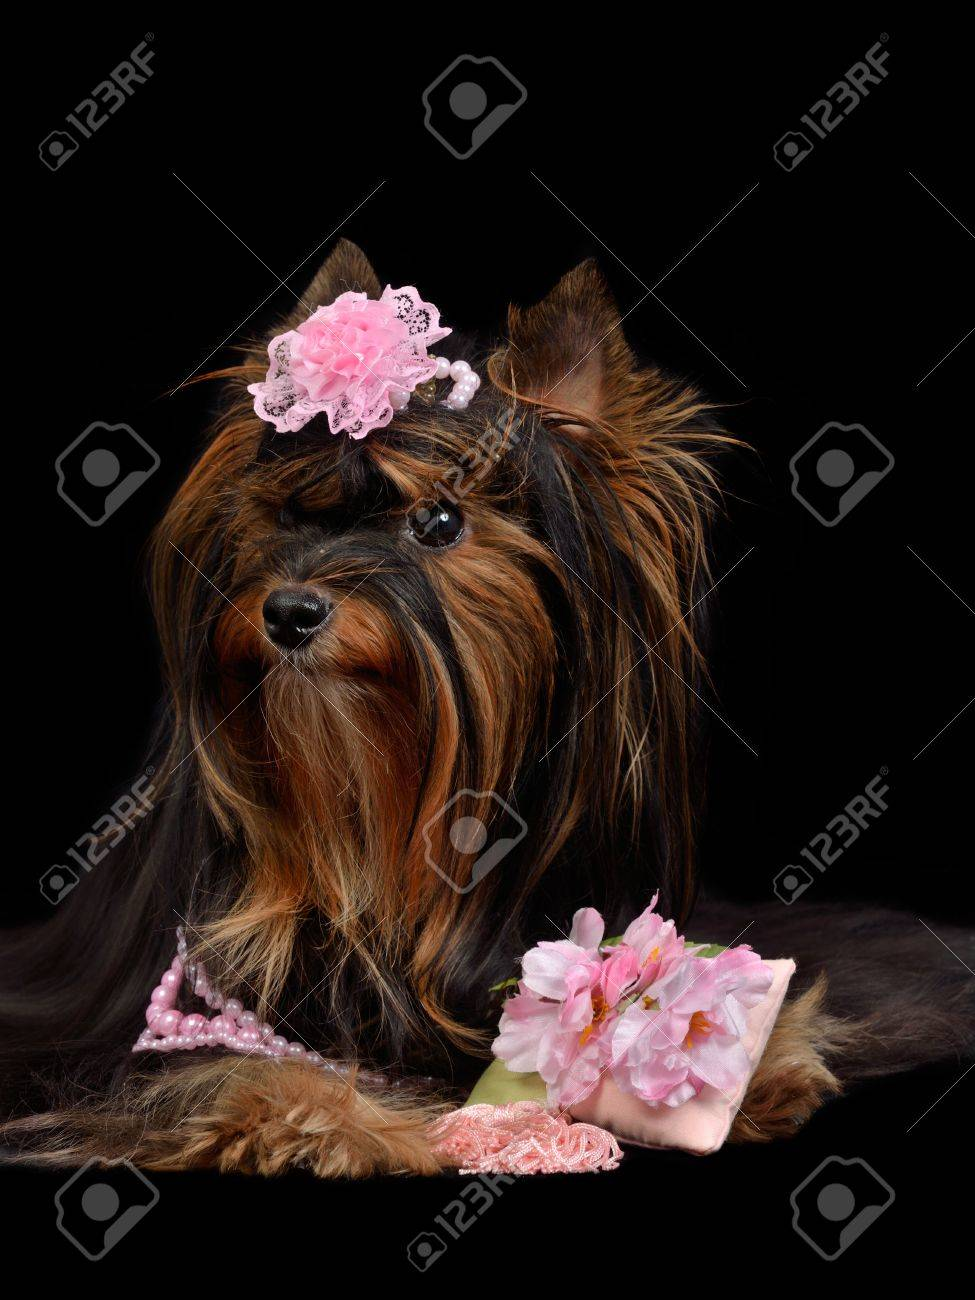 Glamour Yorkie Dog With Pink Items Isolated On Black Stock Photo